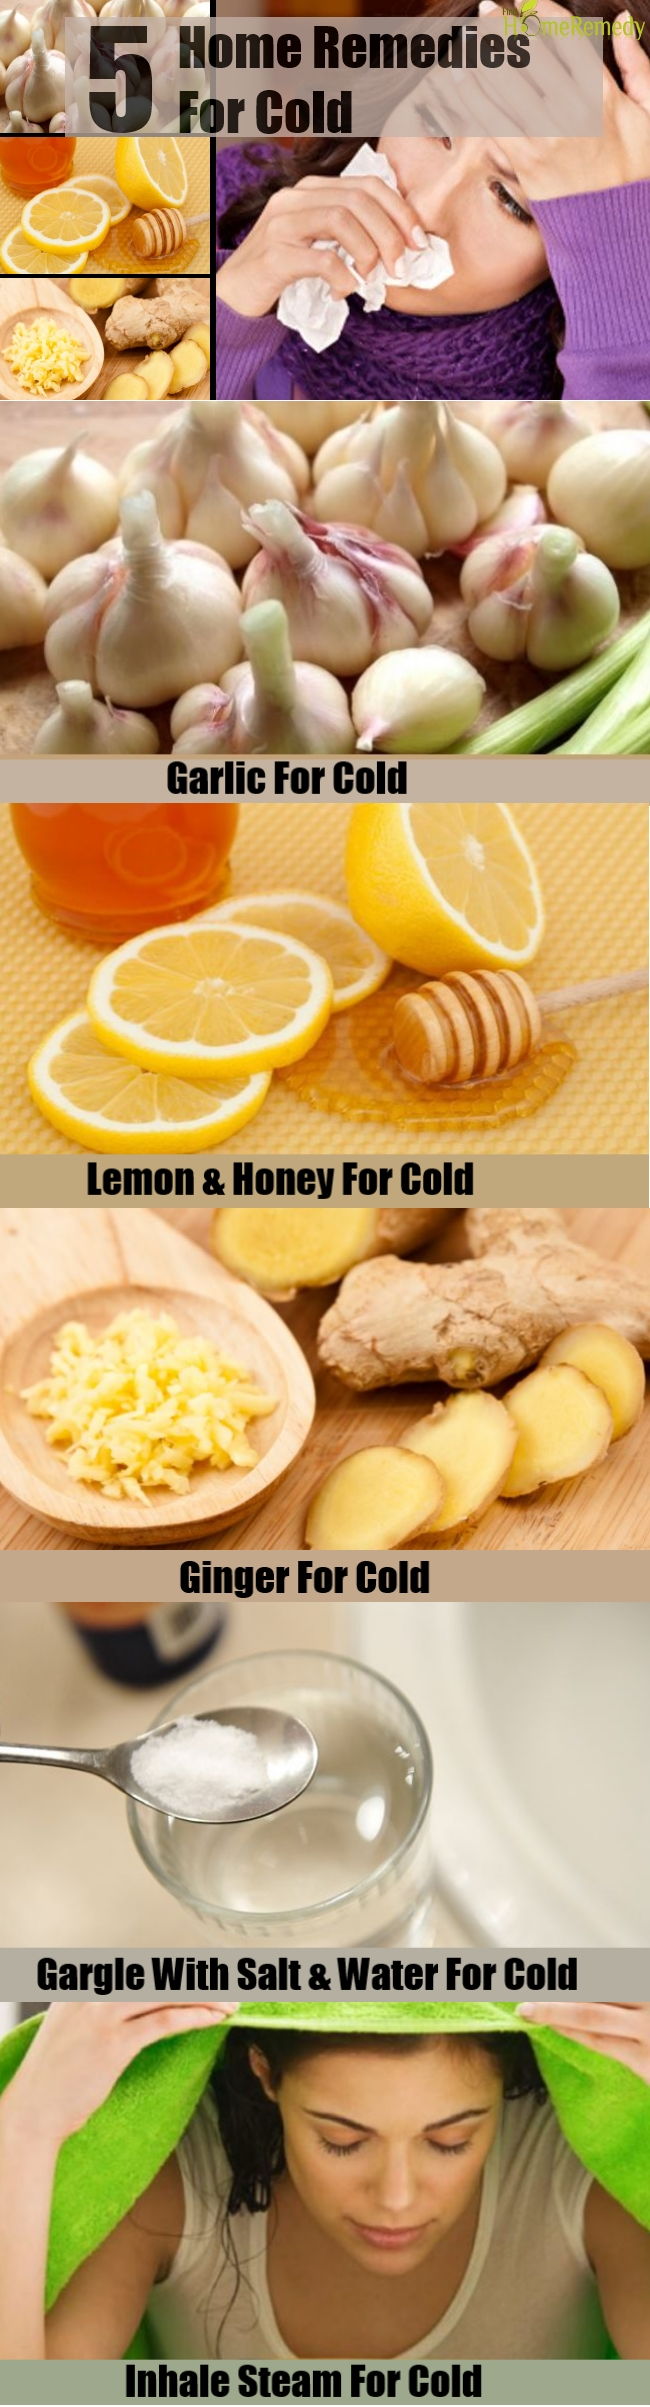 5 Home Remedies For Cold